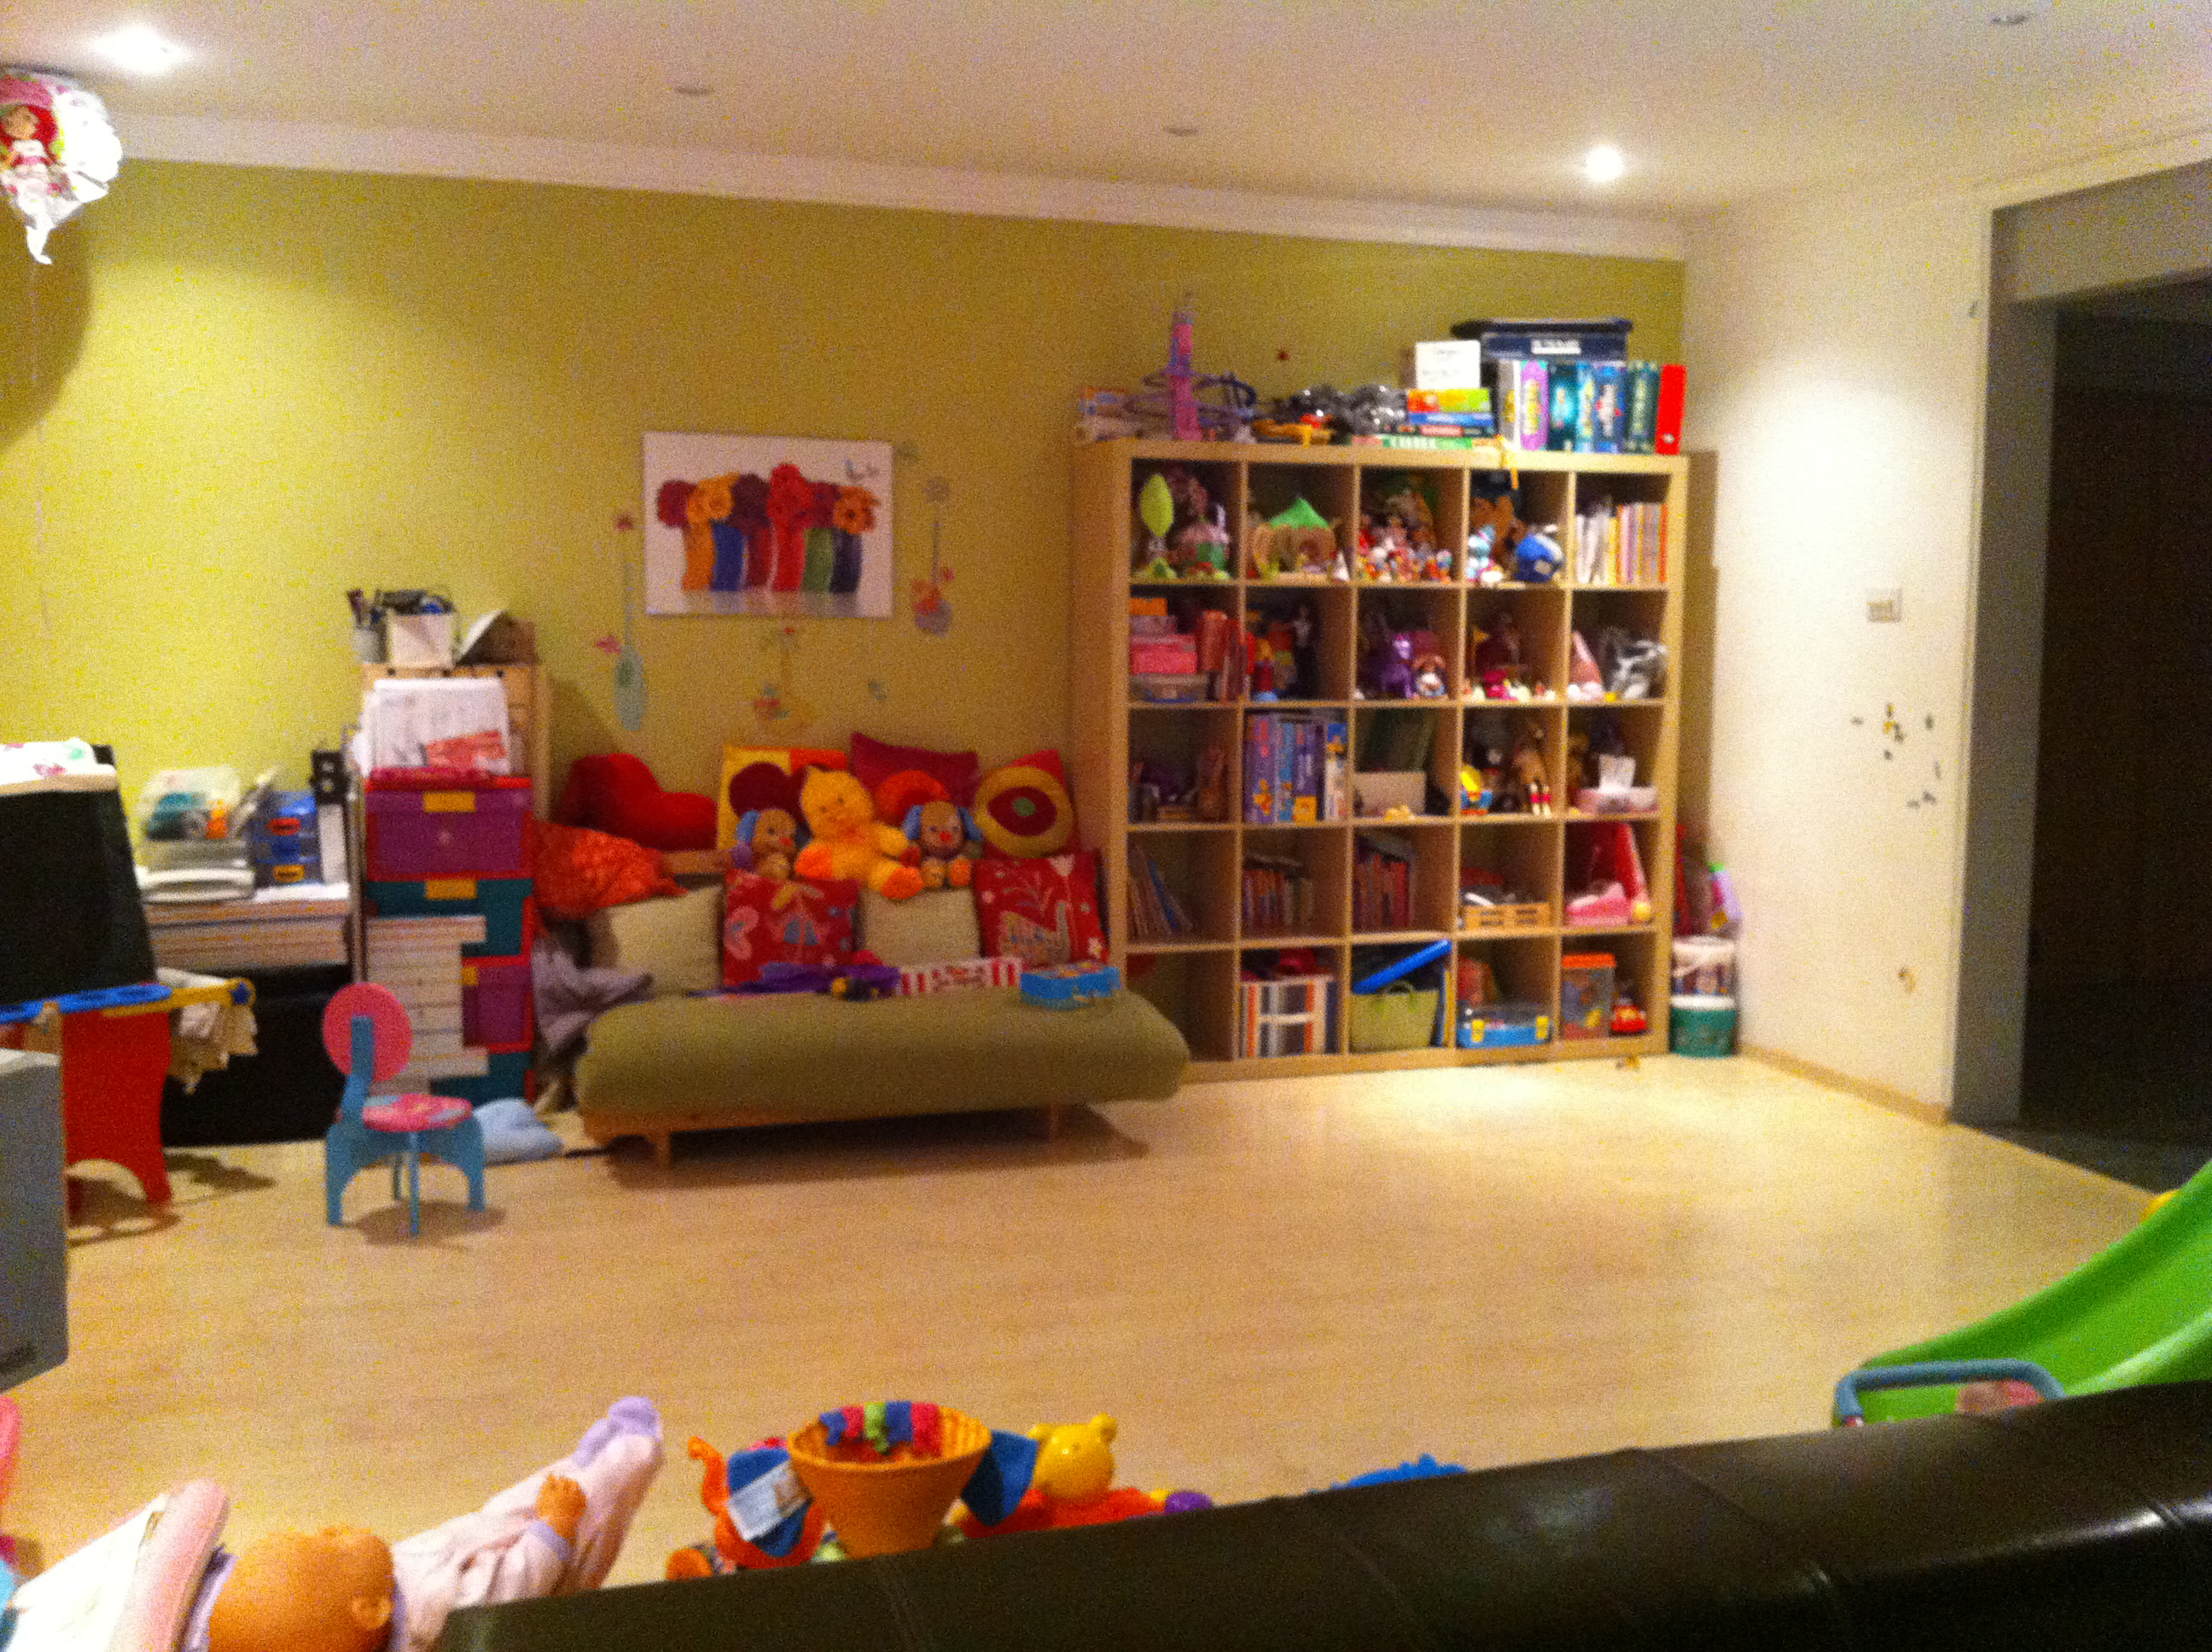 J z s colorful playroom oleana 39 s blog for Interior designs play